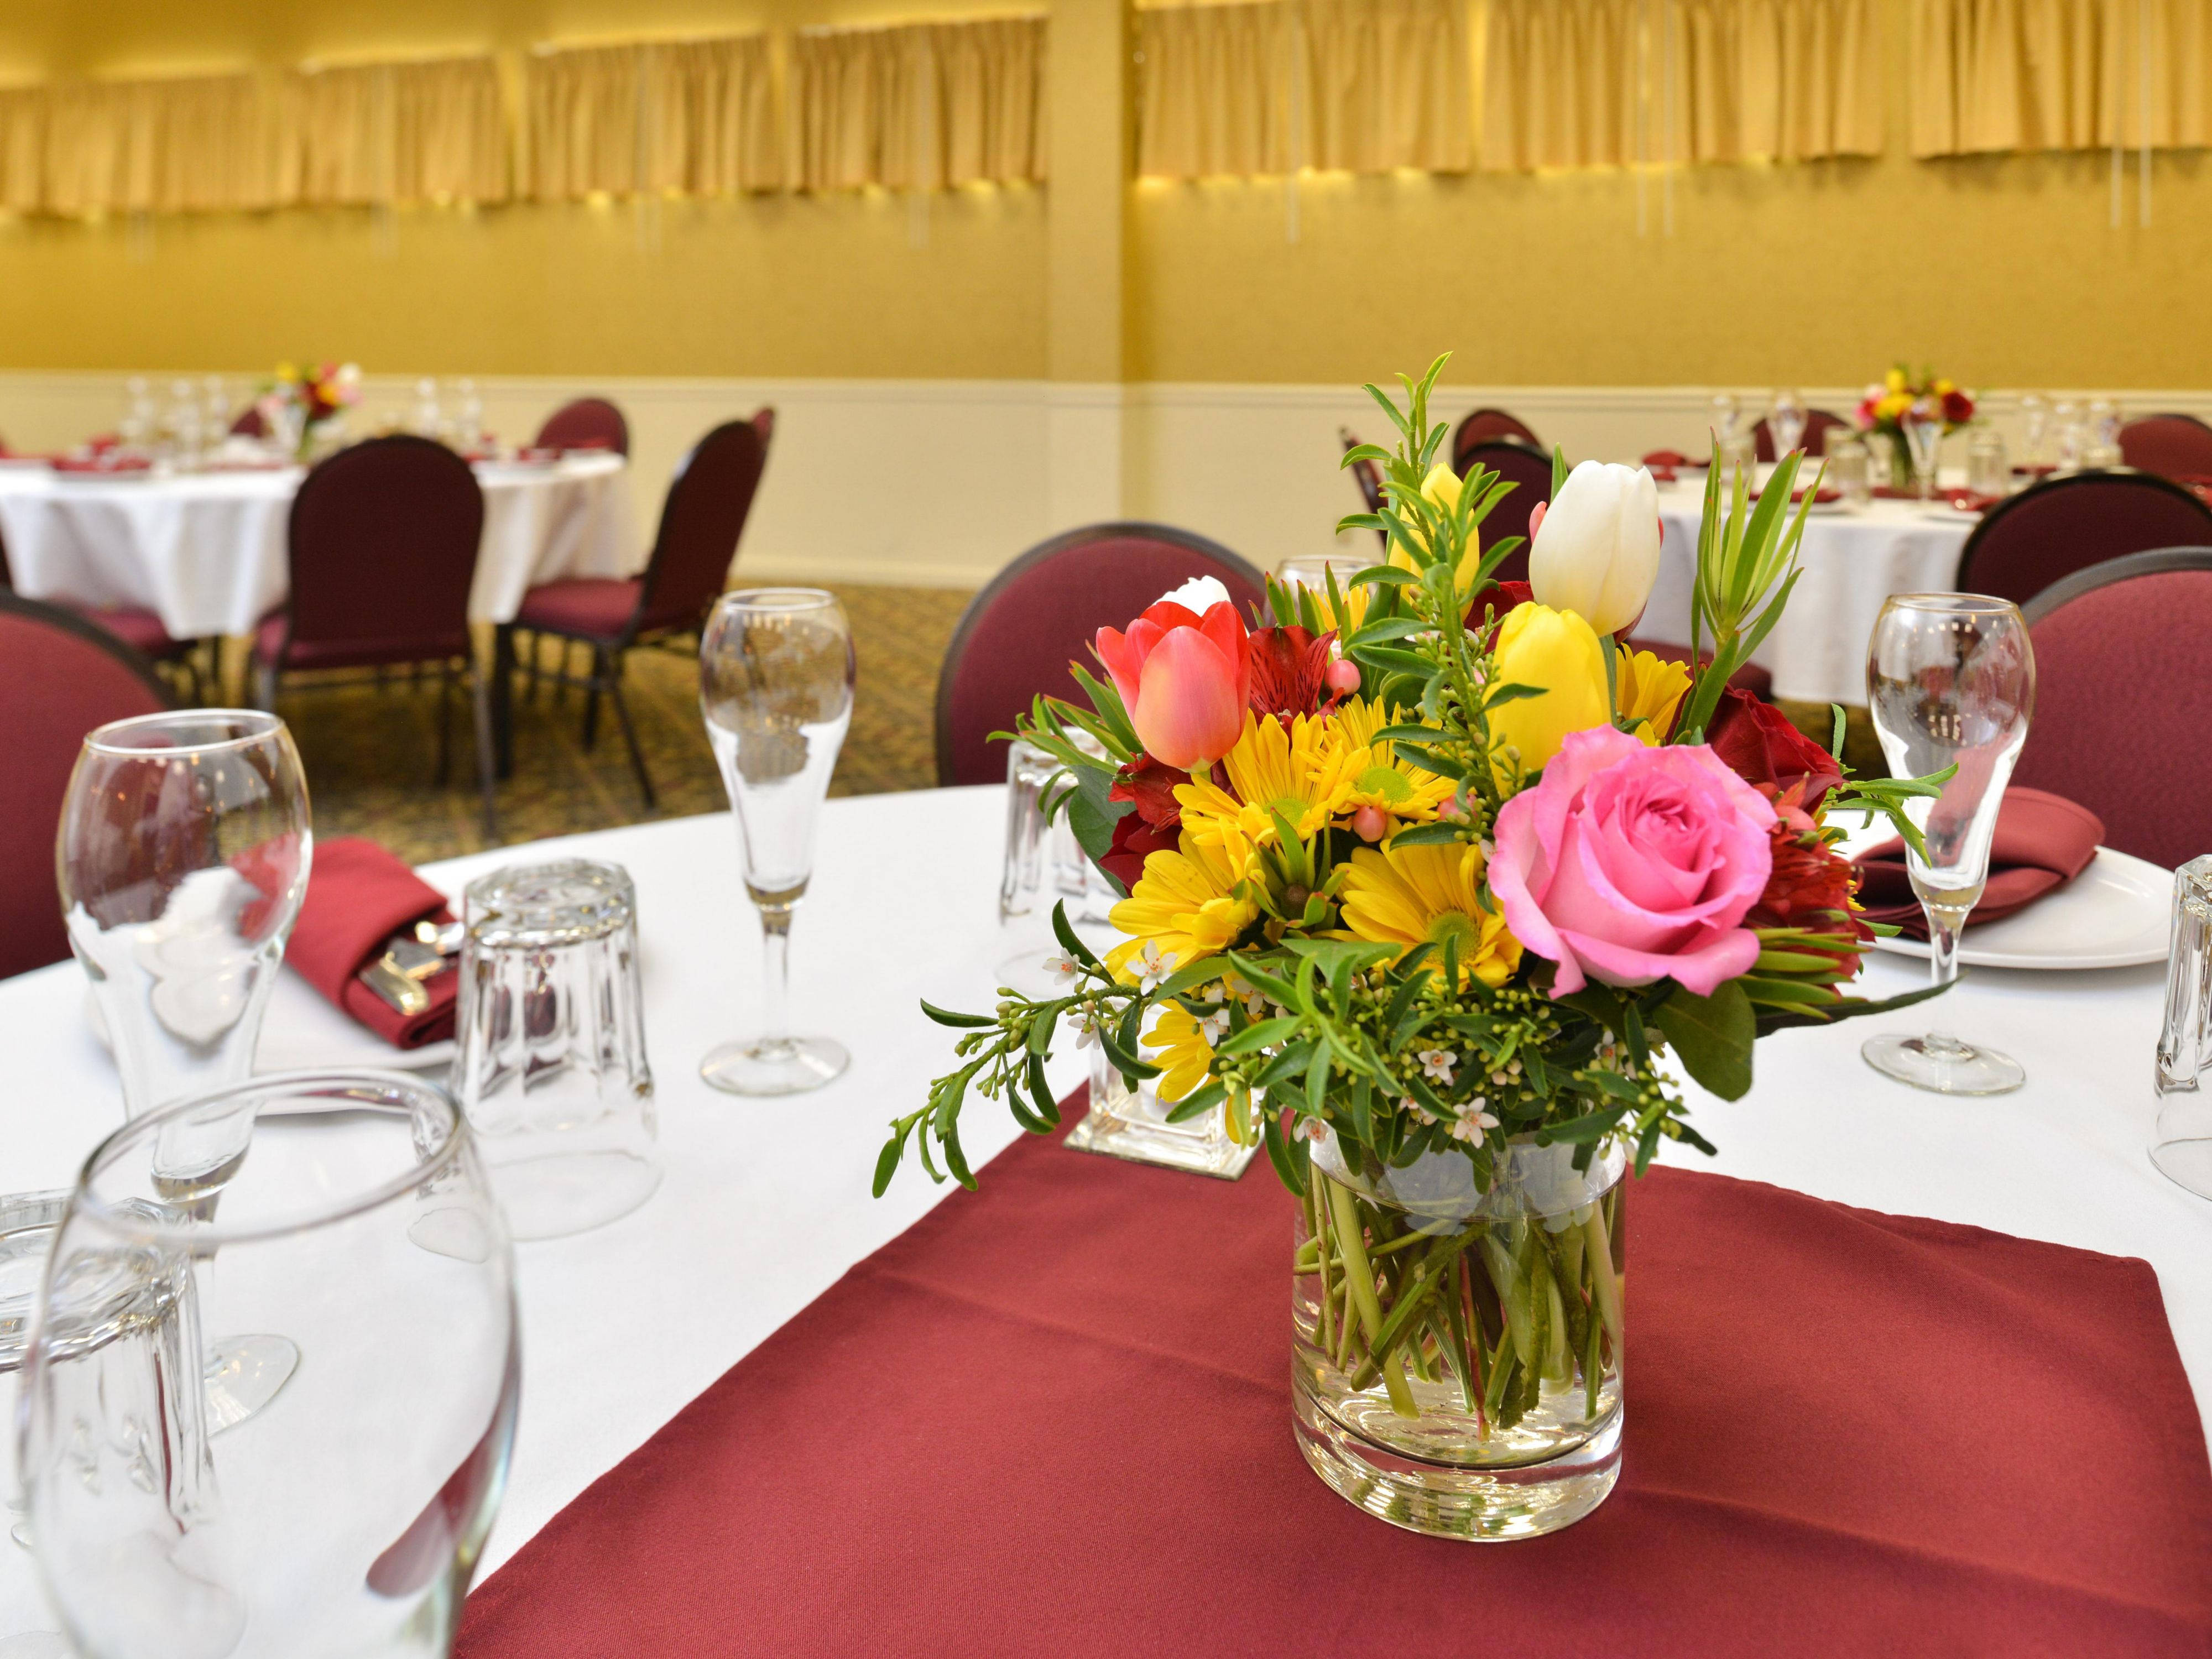 Celebrate special occasions in our Venetian Banquet Room